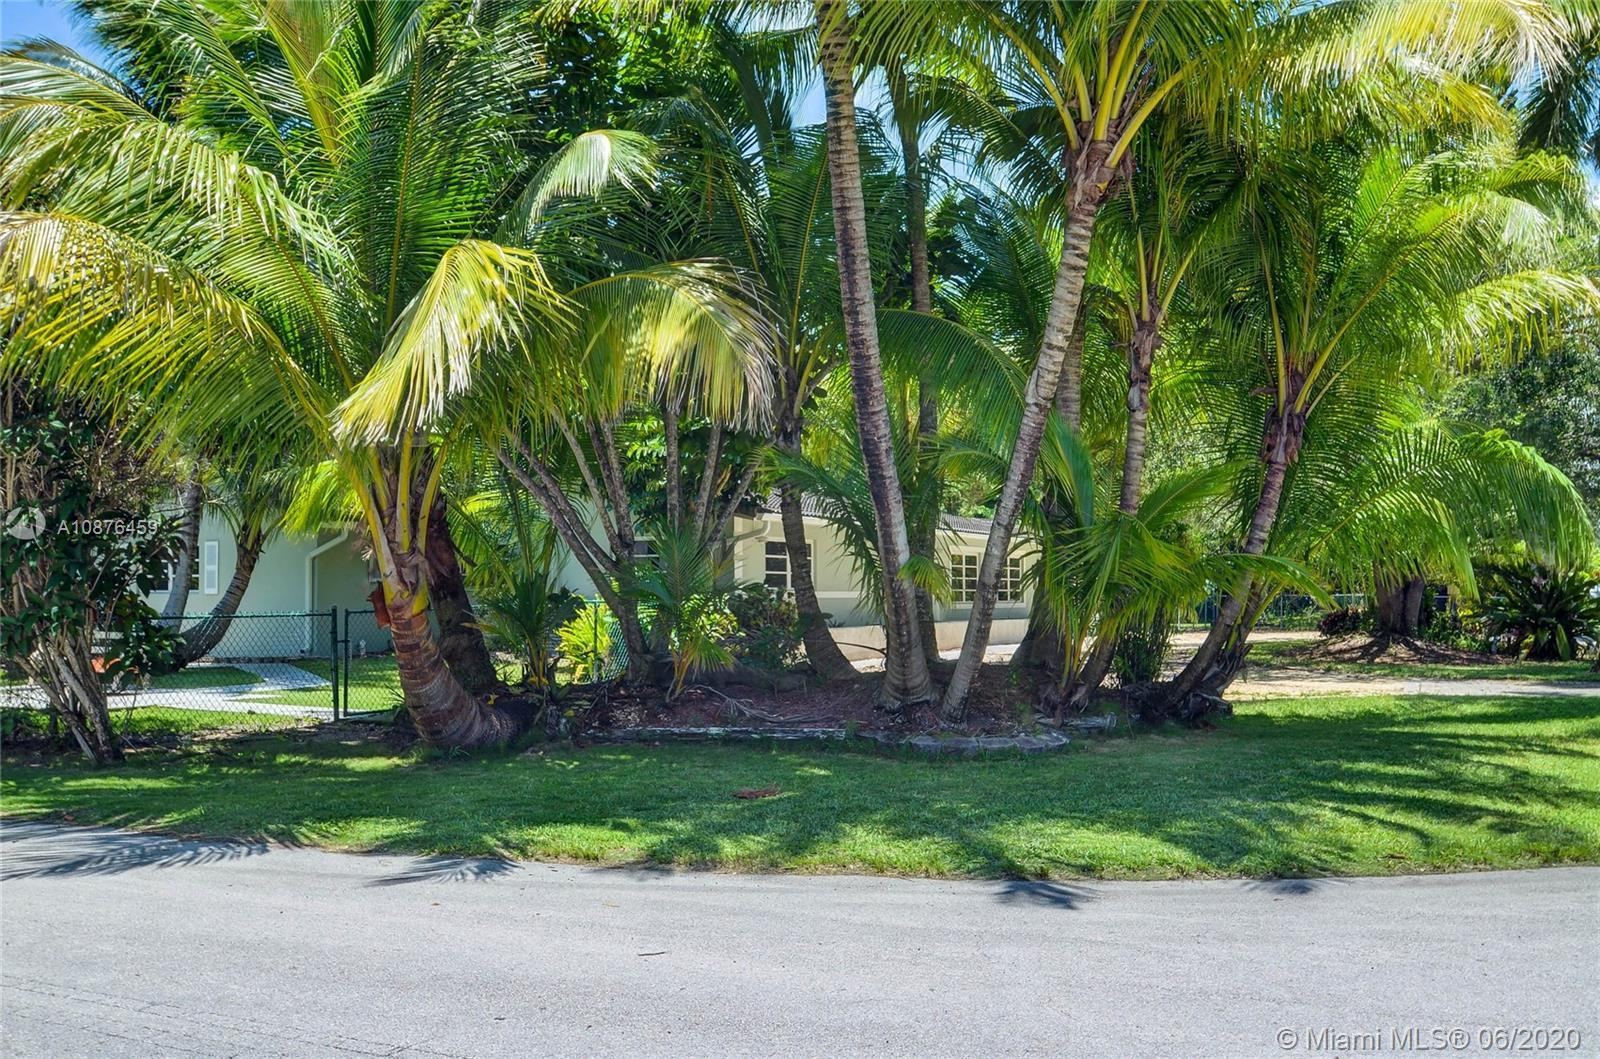 LOCATION, LOCATION, LOCATION, RIGHT IN THE HEART OF PINECREST. START YOUR NEW MEMORIES WITH THIS LAR